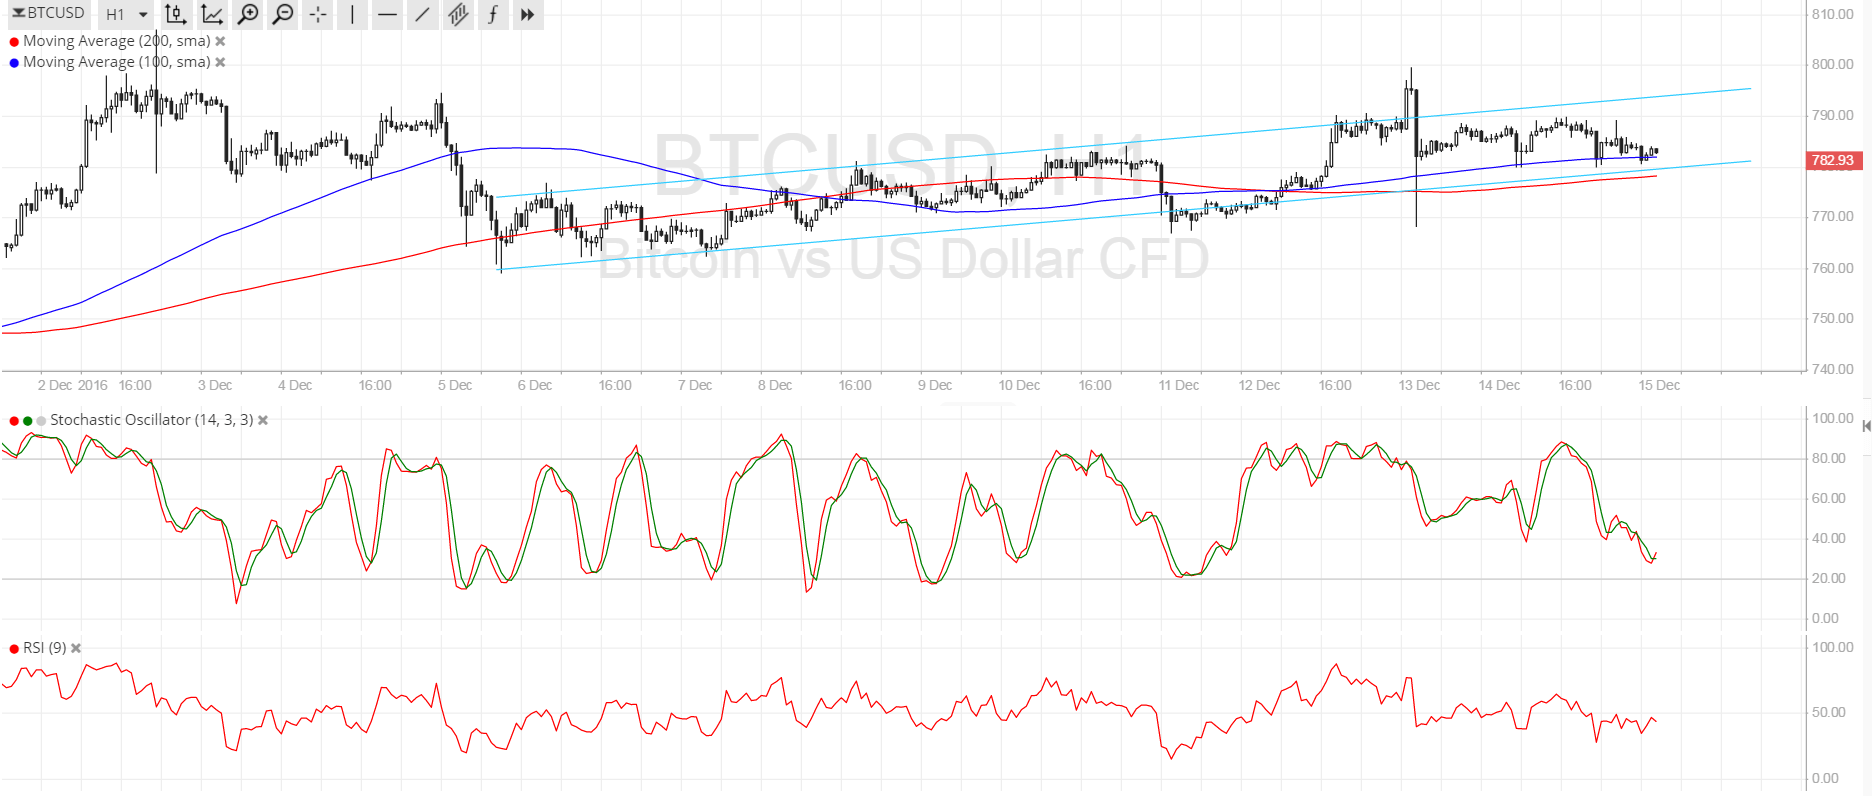 Bitcoin Price Technical Analysis for 12/15/2016 - Give Way to USD Strength